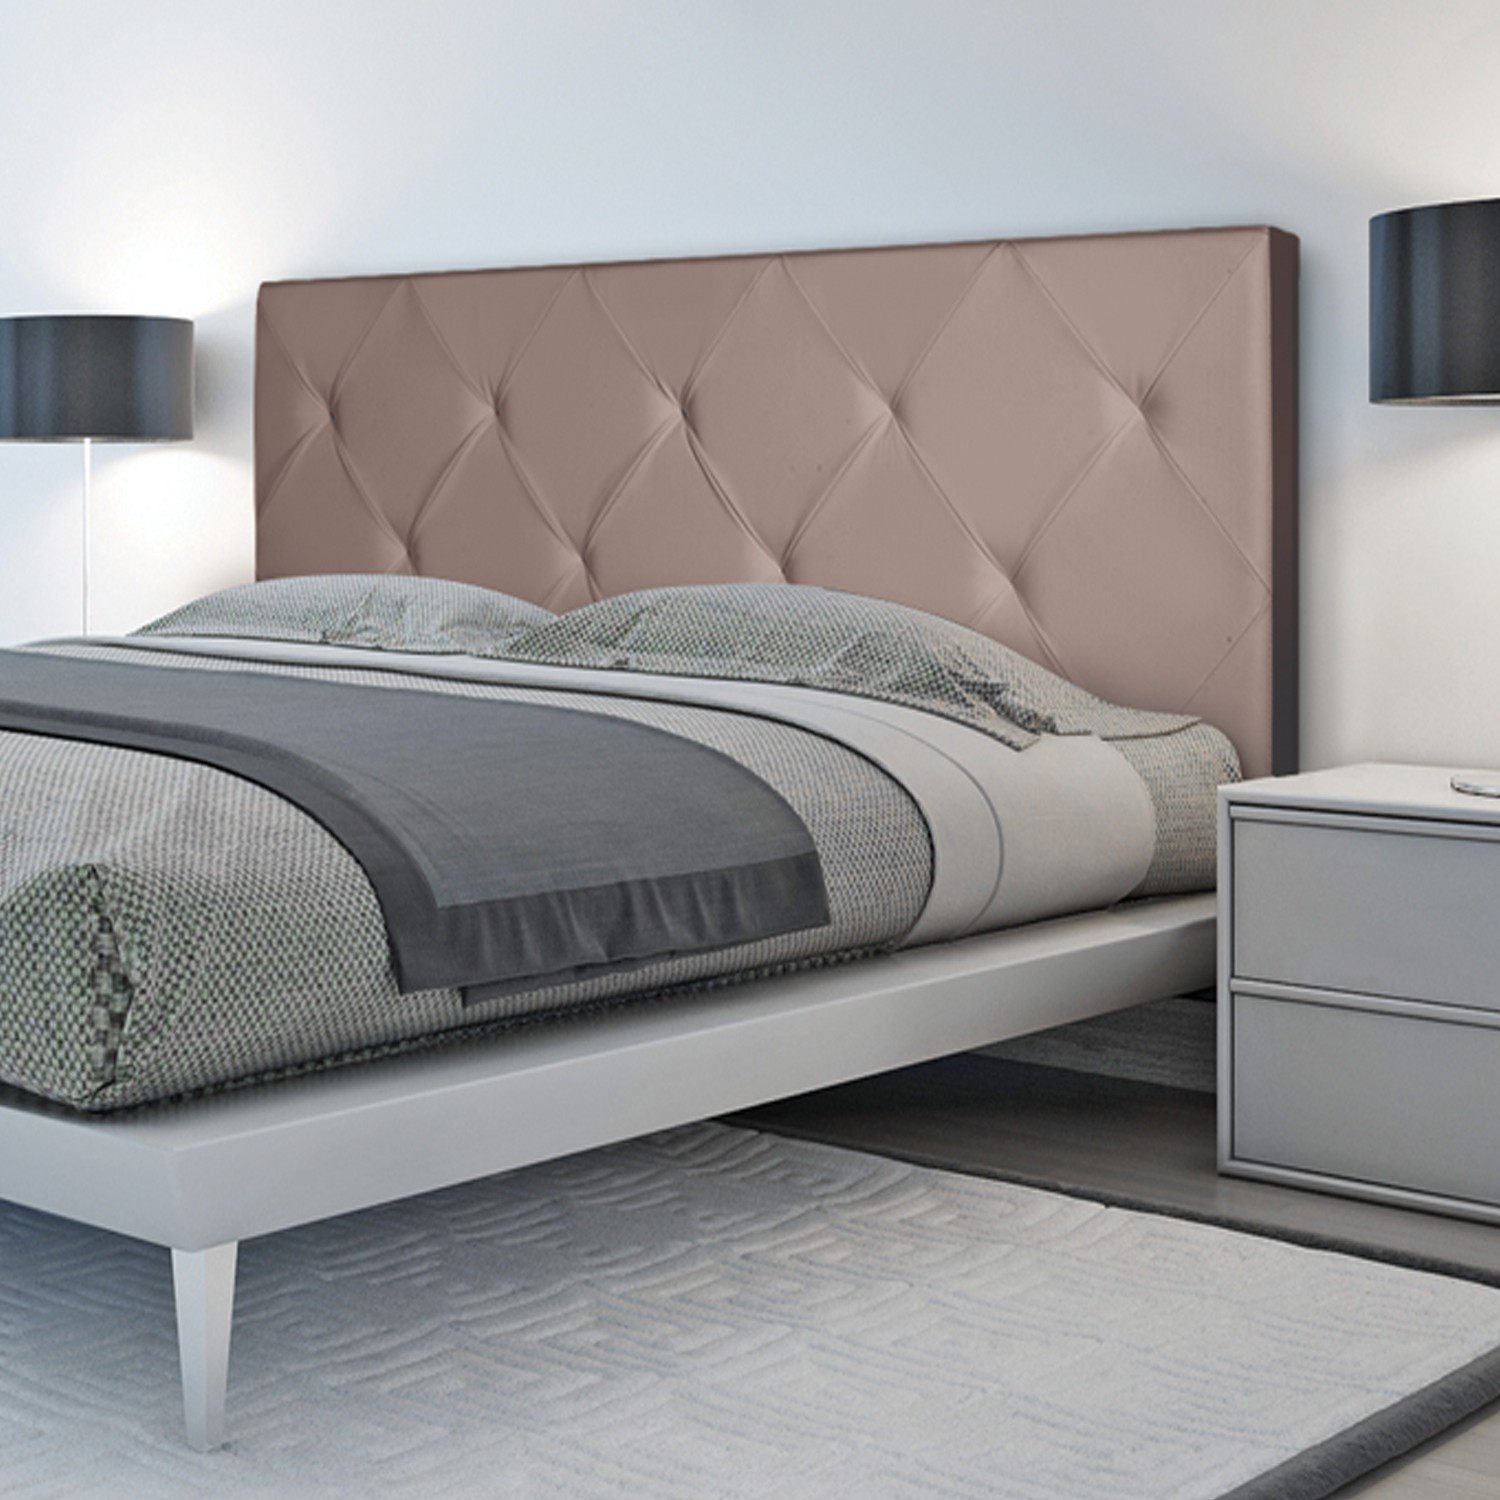 t te de lit capitonn e pvc taupe 160x58 cm accessoires maison et d. Black Bedroom Furniture Sets. Home Design Ideas